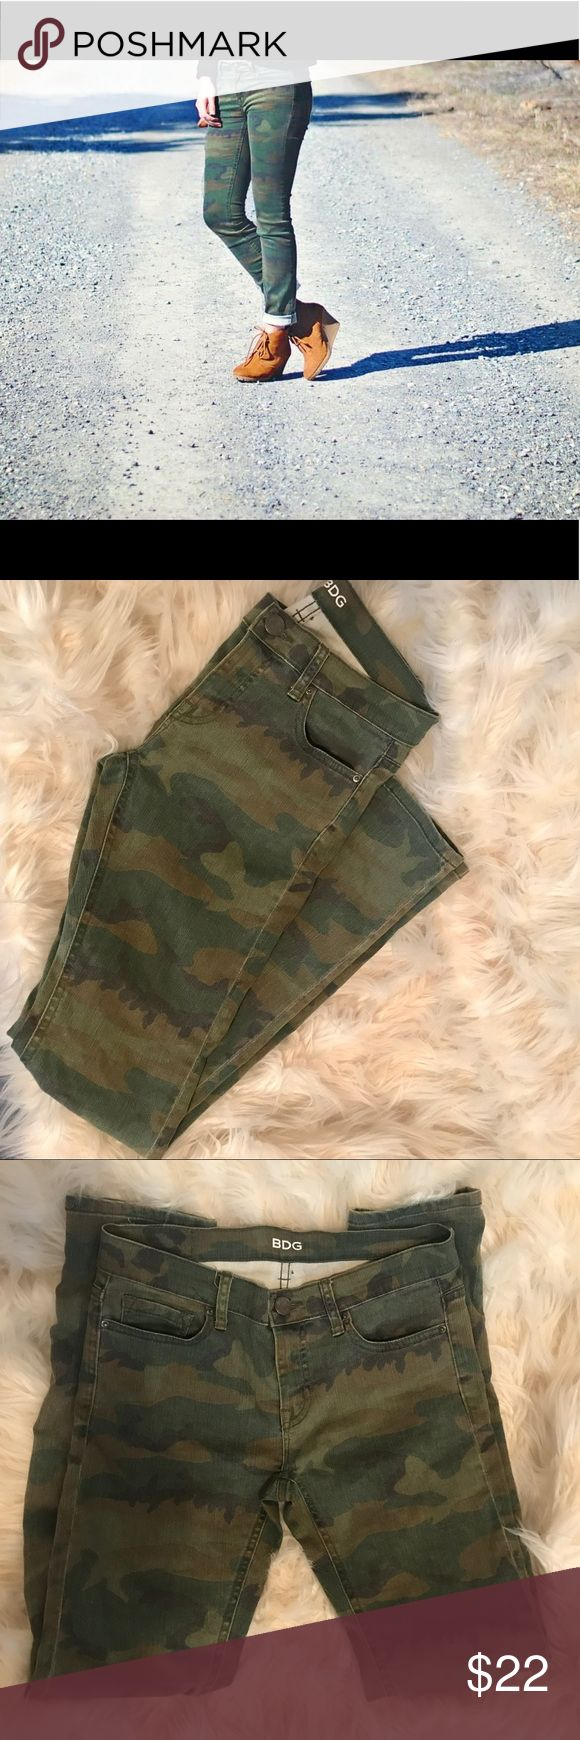 BDG camo skinny jeans Great condition-barley worn! Super cute Urban Outfitters BDG camo skinnies. Low rise, super comfy with slight stretchy material. Add that urban, laid back vibe to any outfit. ✨💫🌲 YOU CAN BUY BOTH SHIRT AND PANTS - Separate listings, bundle to save! Buy two or more save 10% BDG Pants Skinny